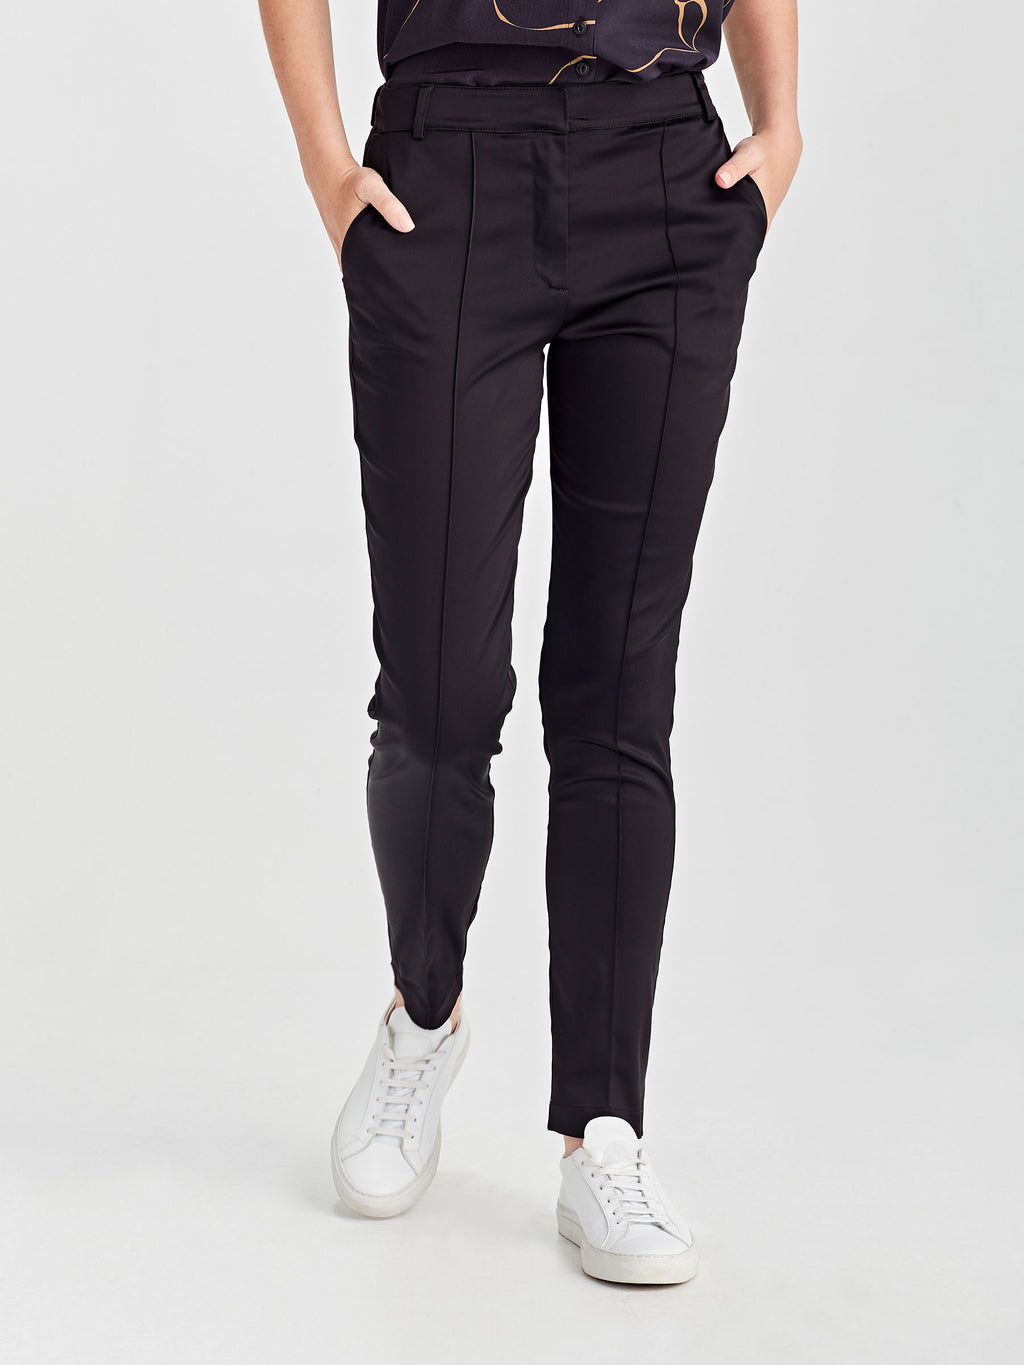 Tuxedo Pant (Stretch Suiting) Black